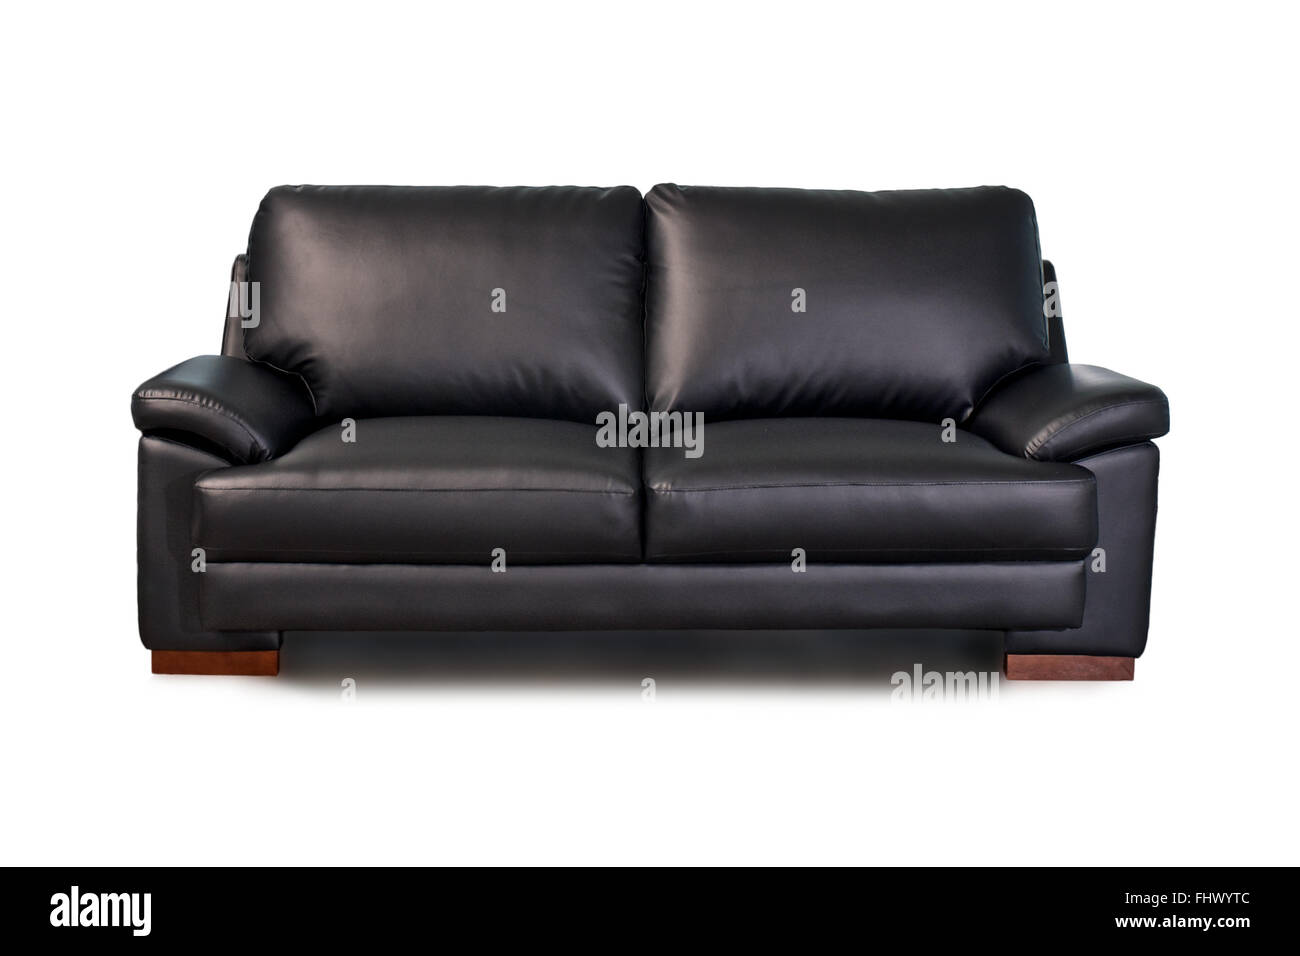 Black leather sofa isolated on white background Stock Photo ...